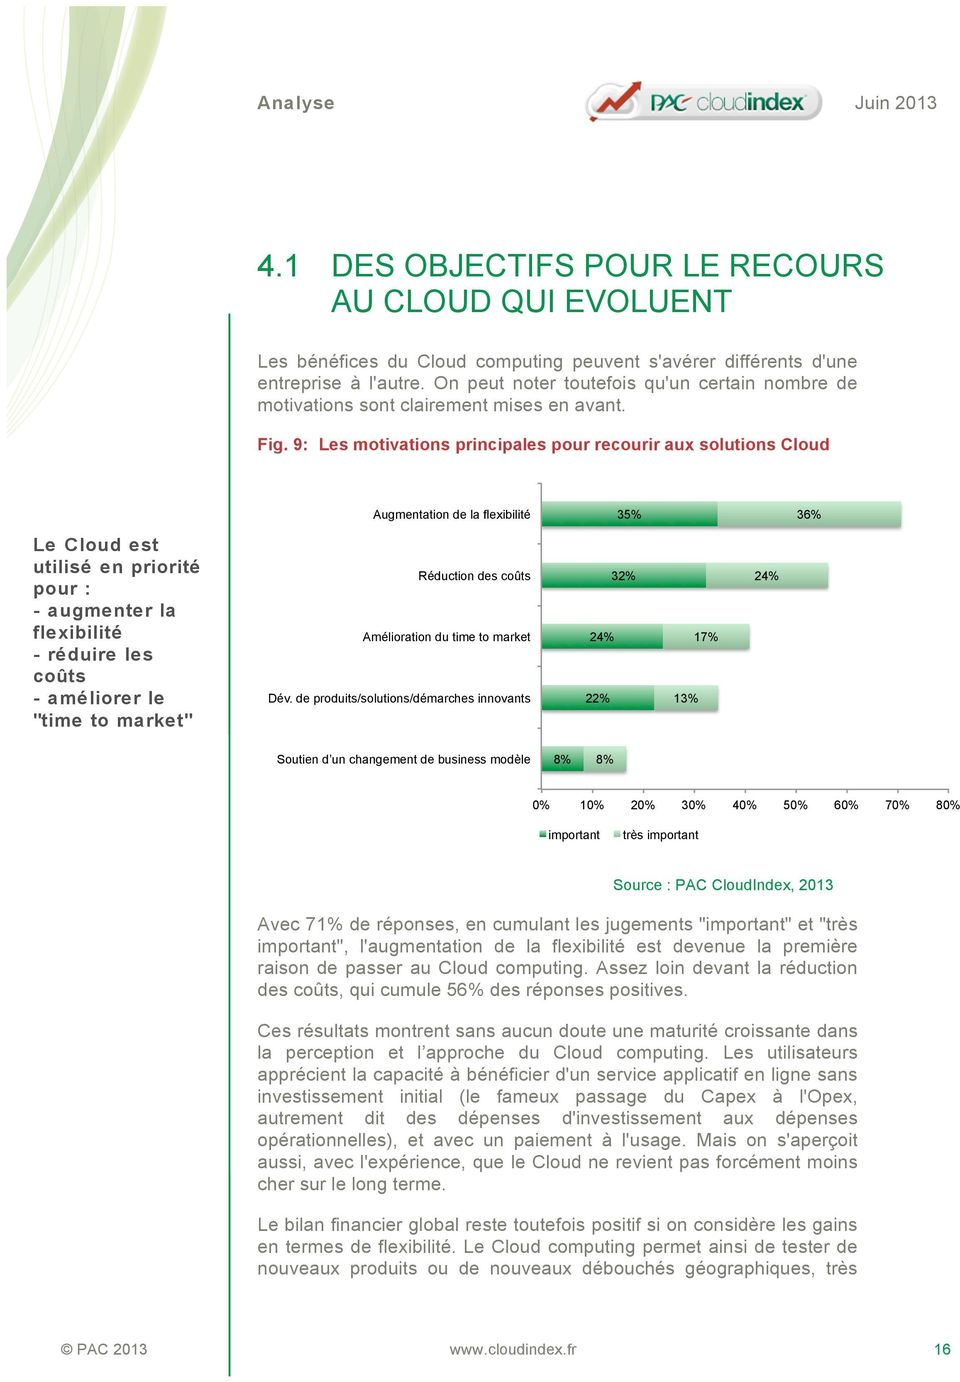 9: Les motivations principales pour recourir aux solutions Cloud Augmentation de la flexibilité 35% 36% Le Cloud est utilisé en priorité pour : - augmenter la flexibilité - réduire les coûts -